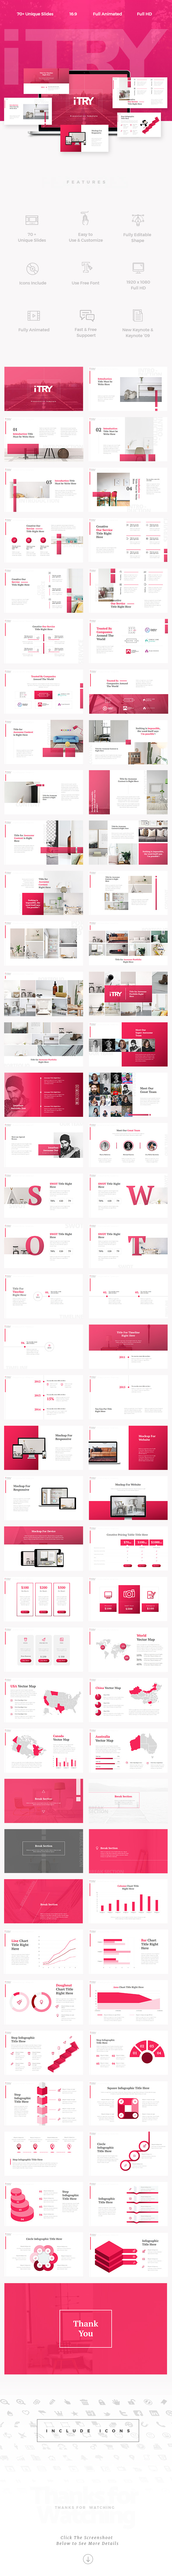 iTry Keynote Template - Creative Keynote Templates